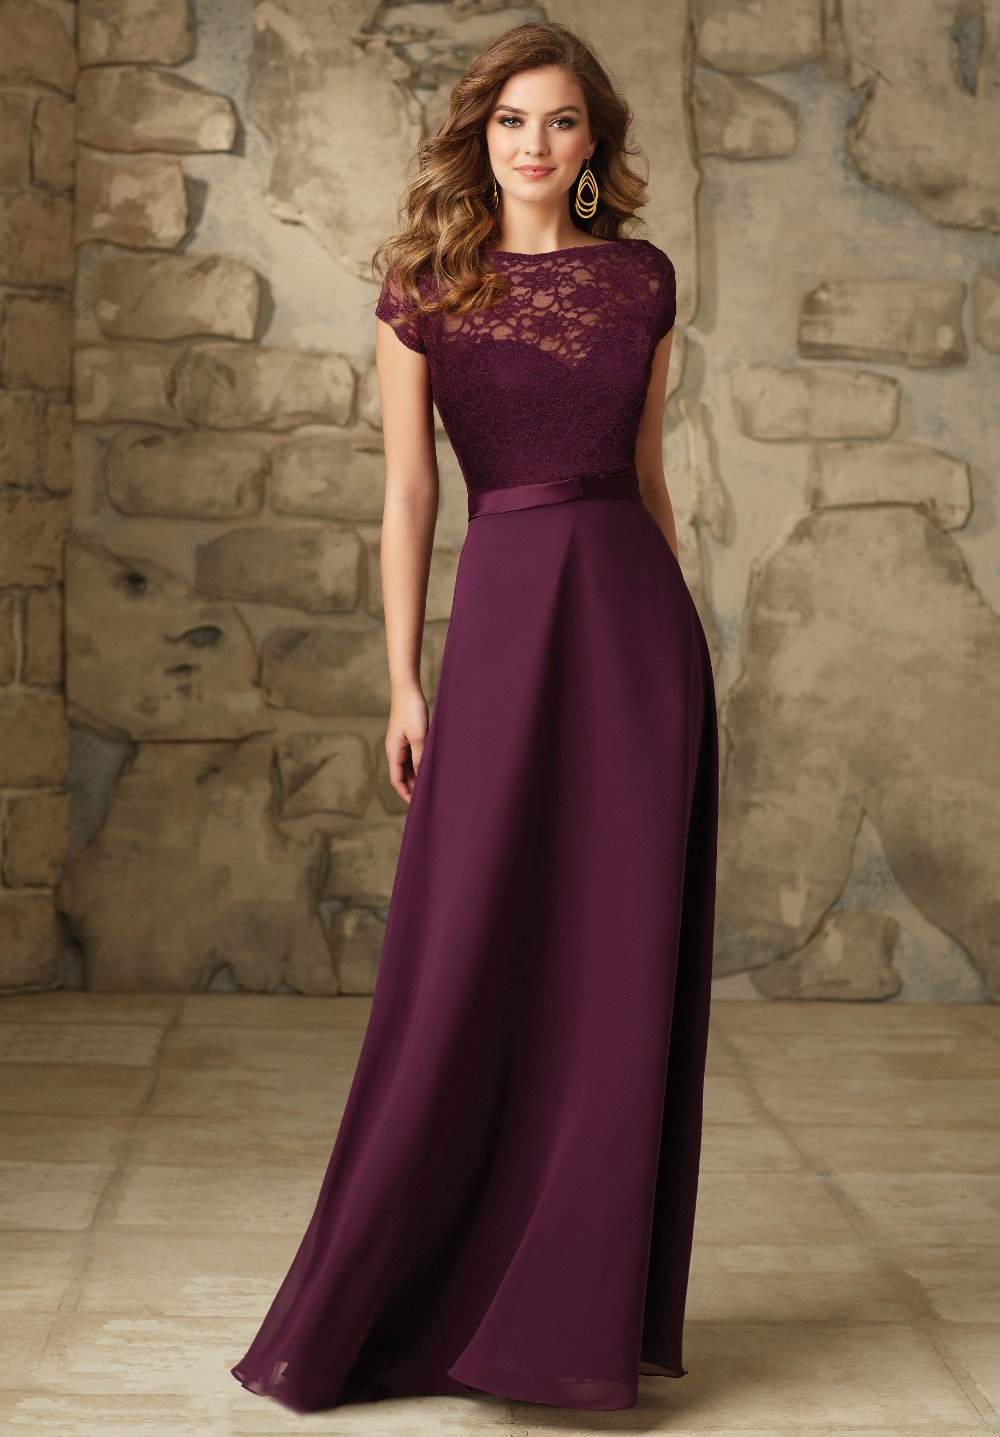 Wedding Party Dress Grape Chiffon Plus Size Modest Plum Bridesmaid Dresses Short Sleeves Purple Maid Of Honor Gowns B179 In From Weddings